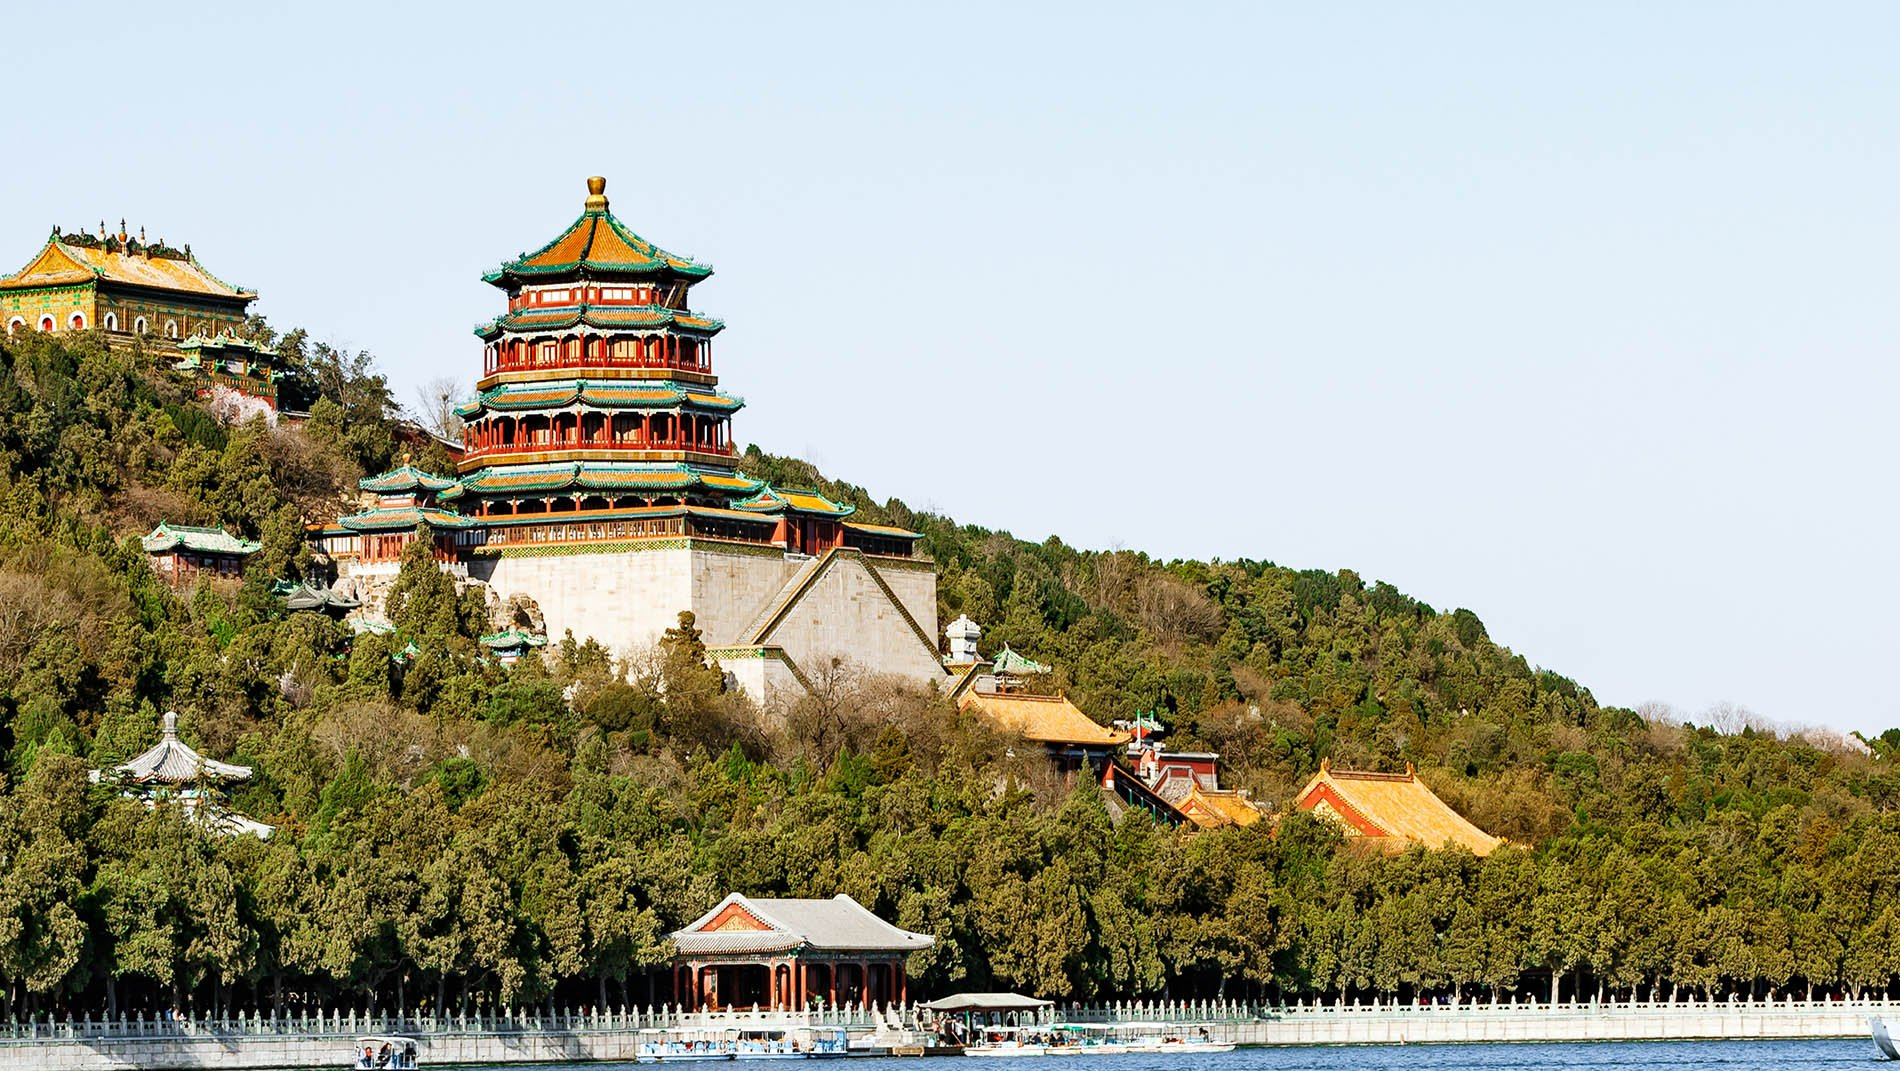 Summer Palace~Paris boasts the palace of Versailles, St Peterburg Peterhof. Dowager Empress Cixi expanded the buildings by Kunming Lake to create an imposing summer residence. At over one square mile, you'll be wishing you had more time to explore the lake, imperial palaces and exquisite gardens.